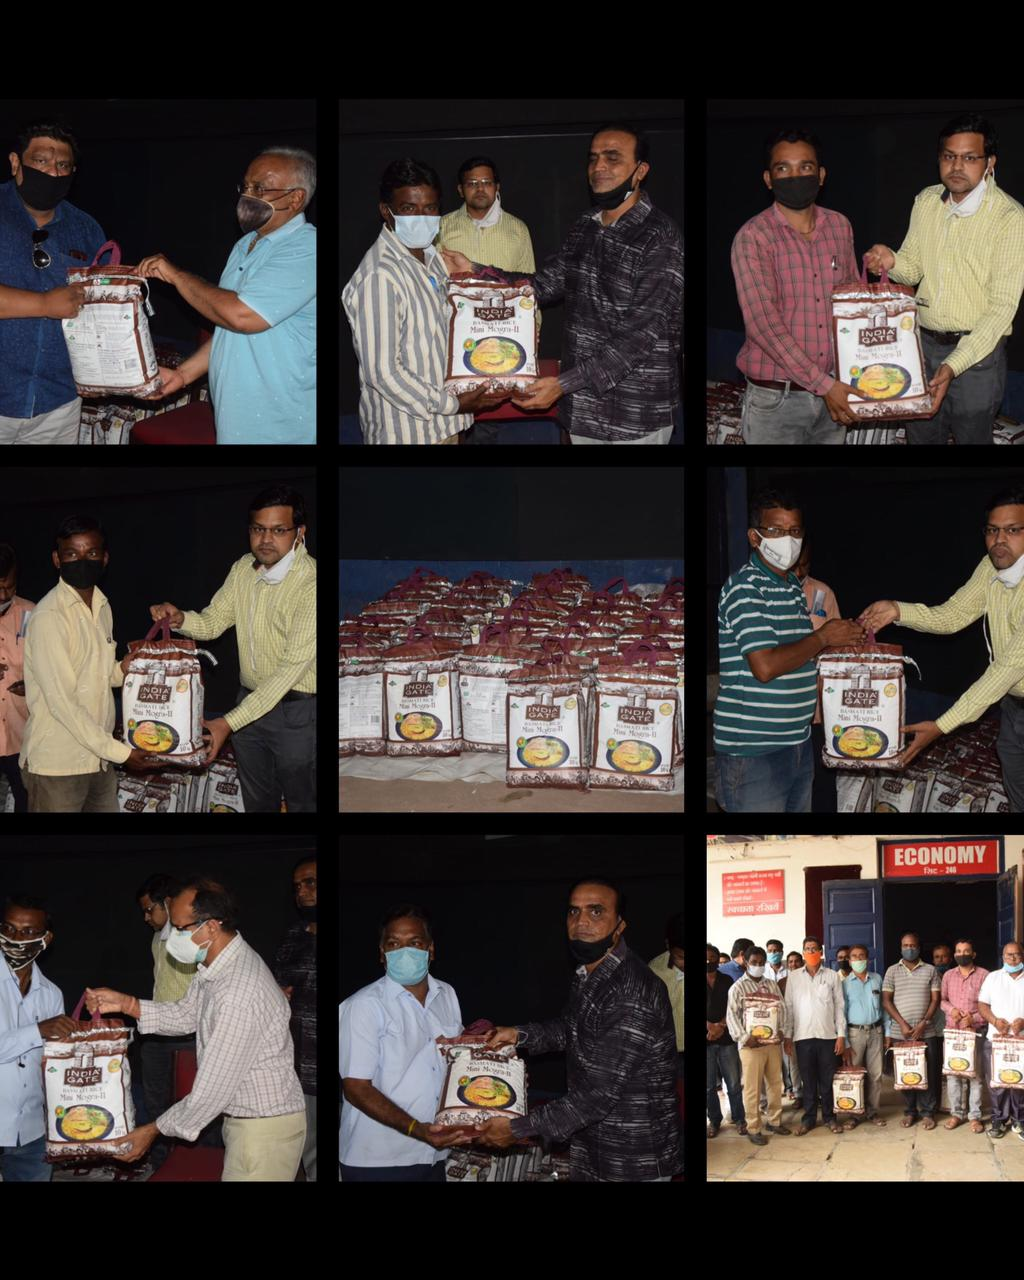 Tisca Chopra Donates Rice Packets To Theatre Workers In Interior Maharashtra Suffering From The Pandemic